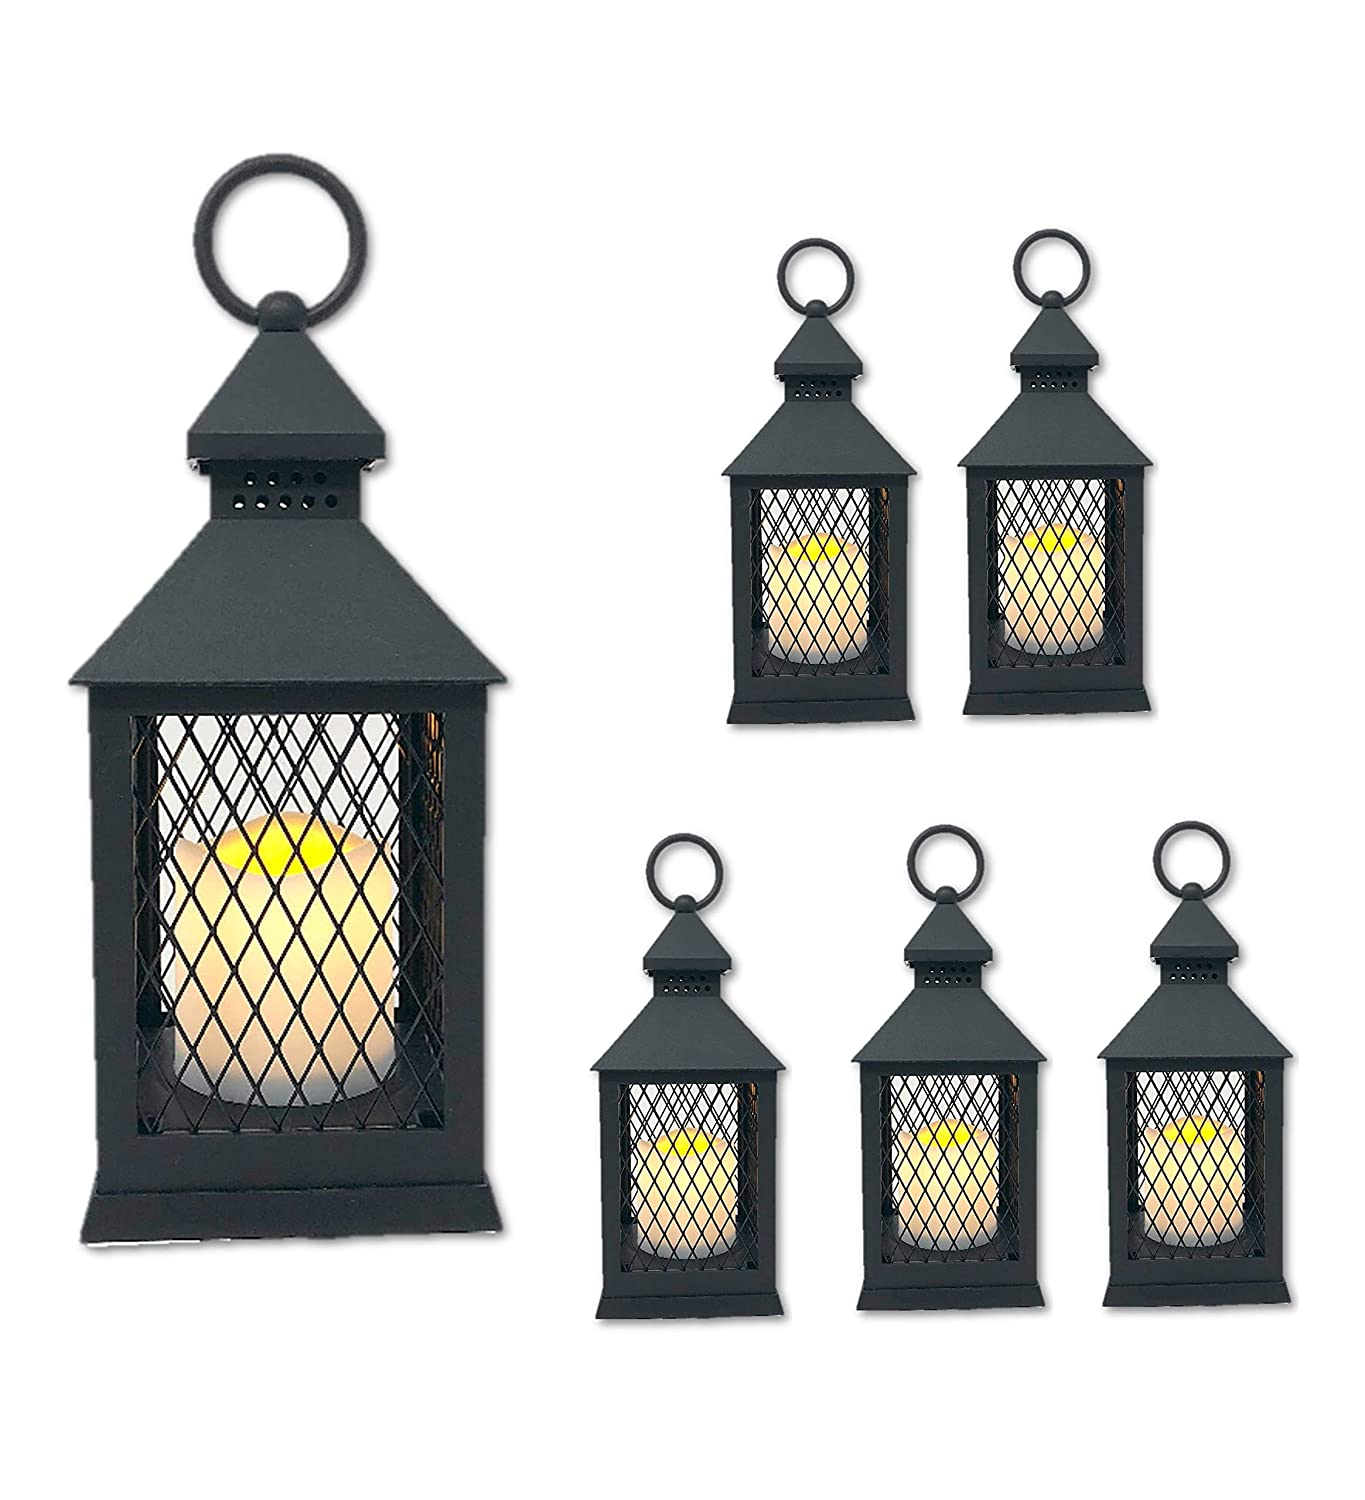 """The Nifty Nook """"Farm House Lanterns"""" {6 Pc Set} 10"""" Decorative Lanterns with Flameless LED Lighted Candle, 5HR Timer, Weather Resistant - Decorative Outdoor Lanterns - Black"""